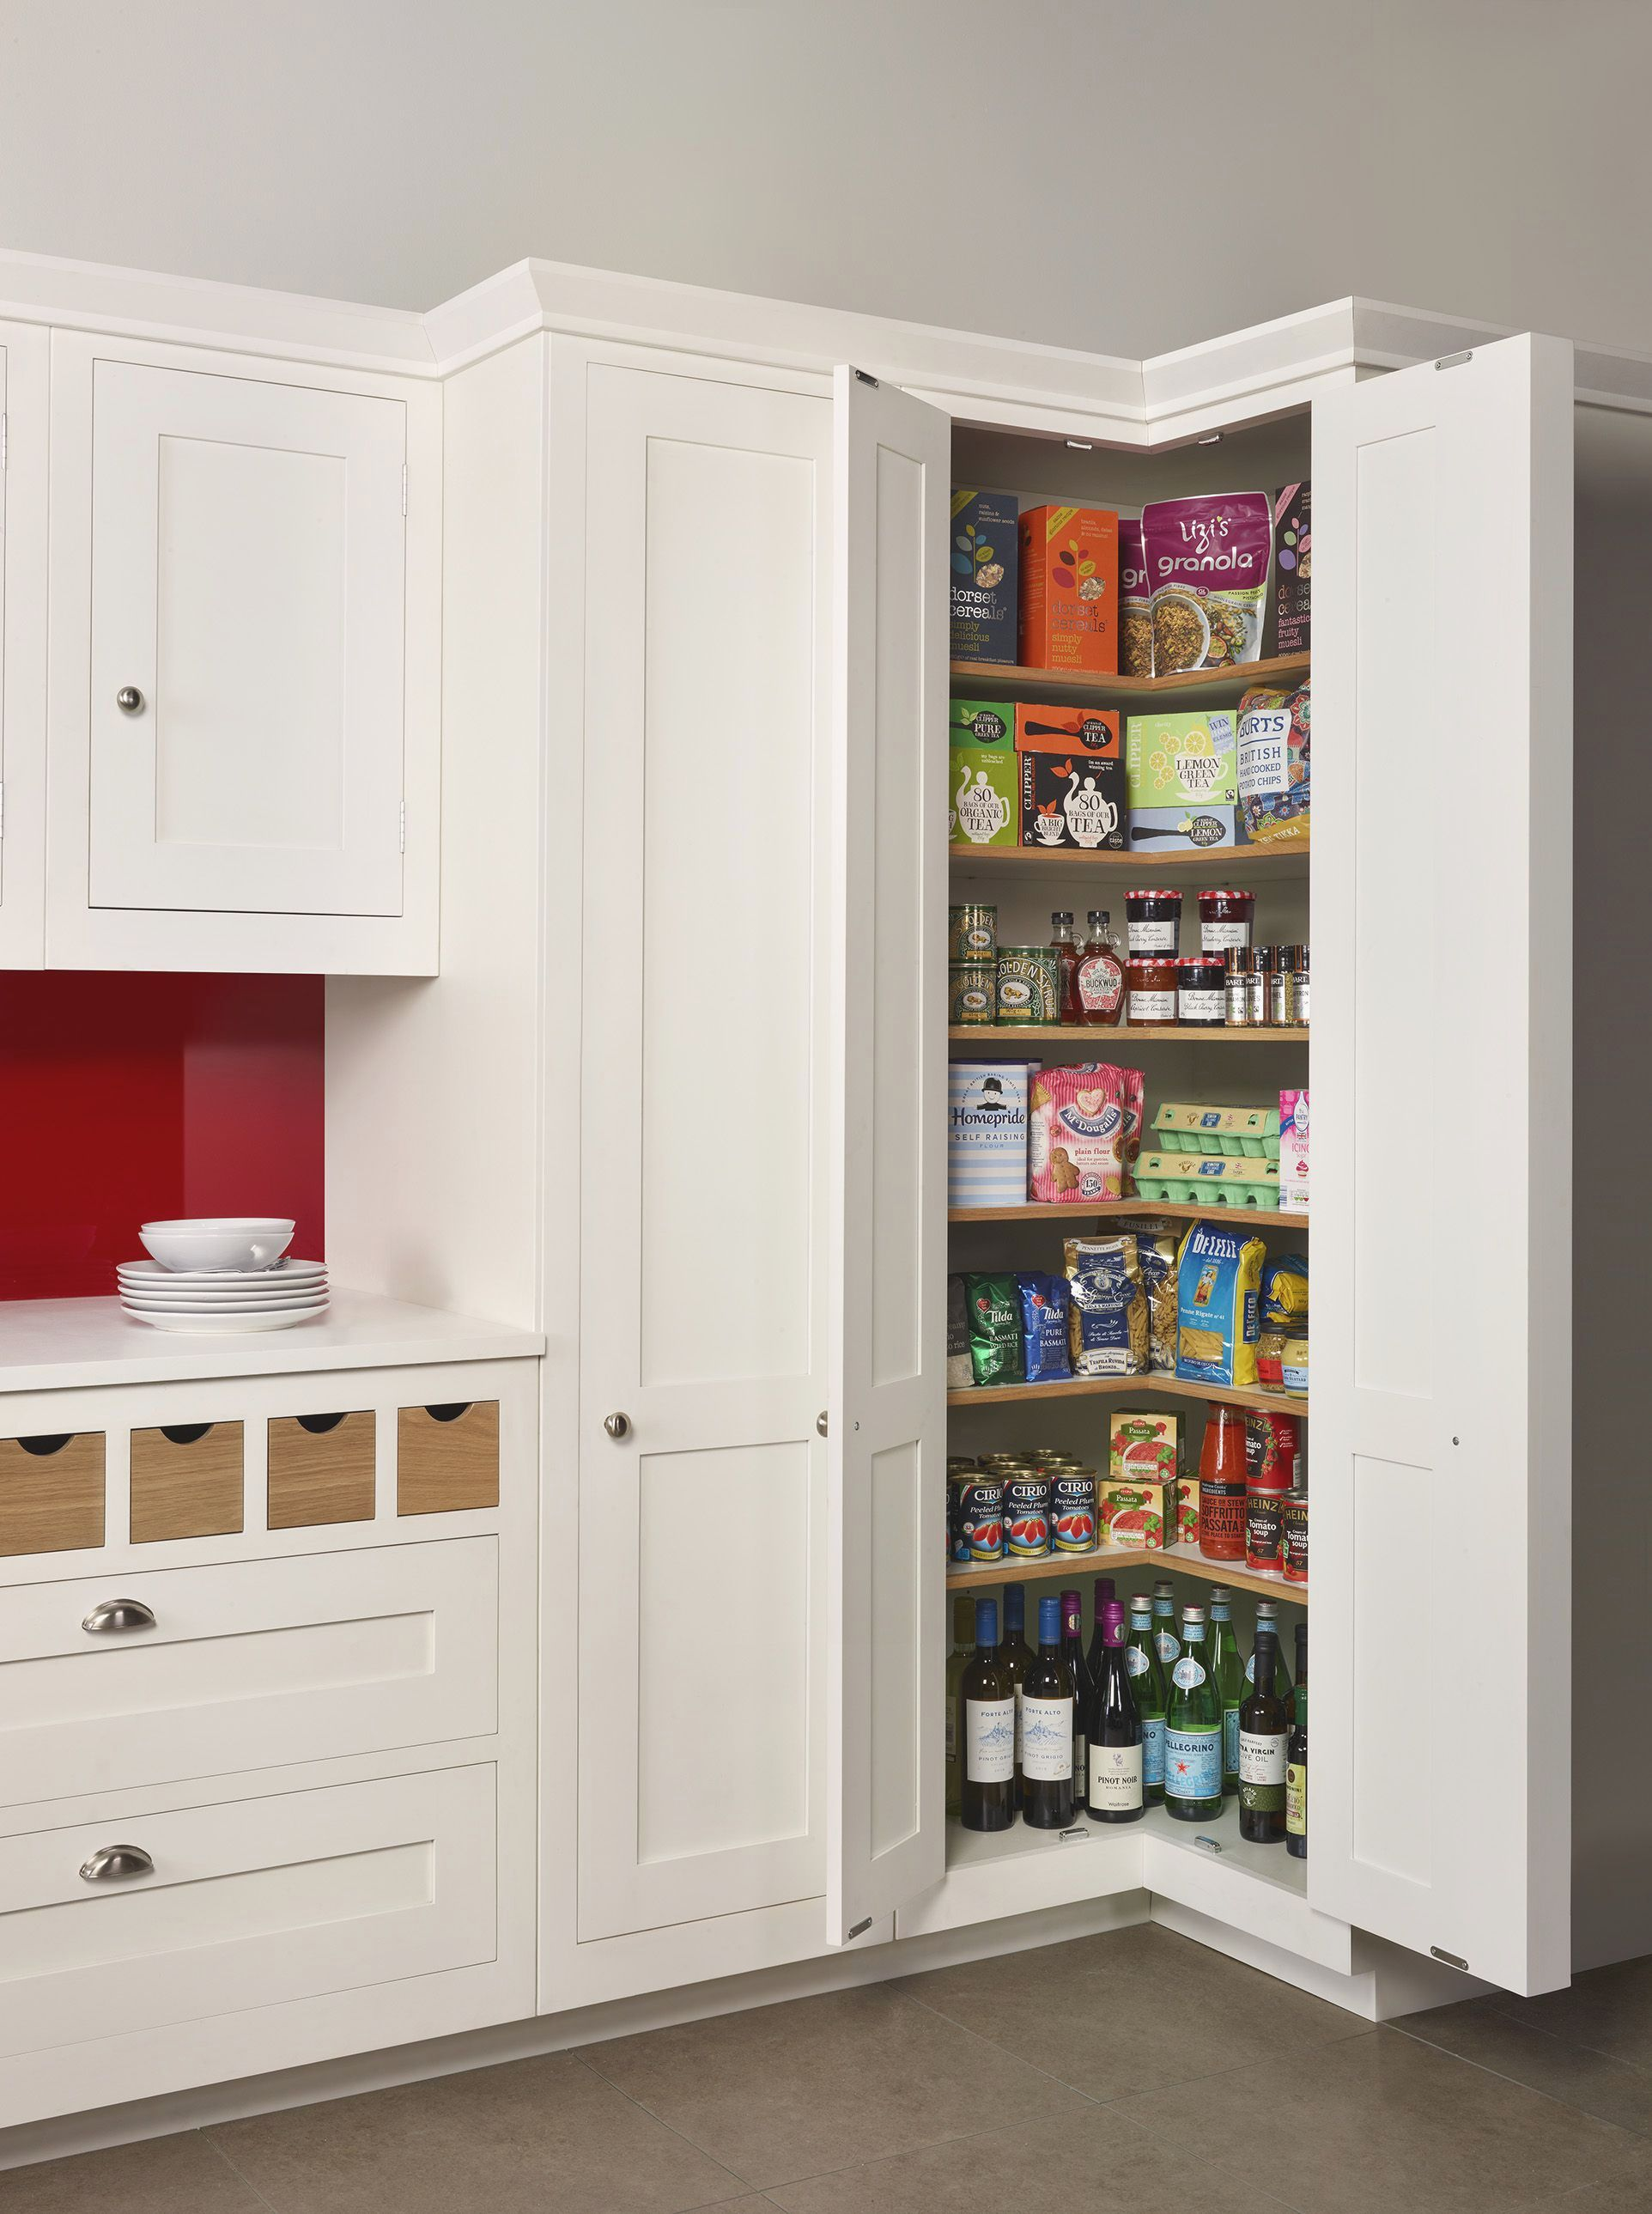 Corner Pantry Cabinet Dimensions Luxury Corner Pantry Cabinet Kitchen Cabinet Design Corner Kitchen Cabinet